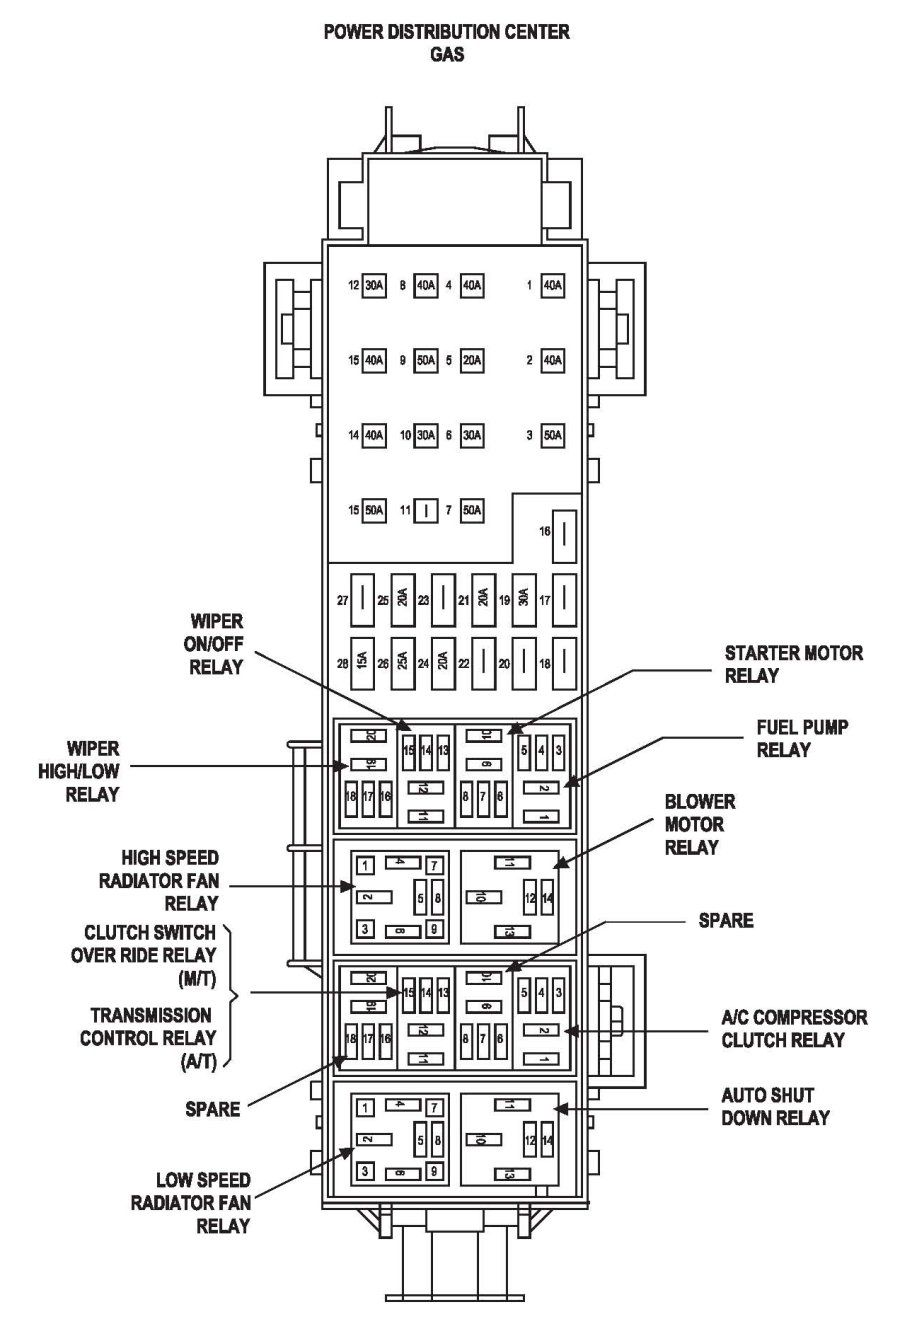 [DIAGRAM_5LK]  Jeep Liberty Fuse Box Diagram - image details | Jeep liberty, Jeep  commander, Fuse box | 03 Jeep Liberty Headlight Wiring |  | Pinterest